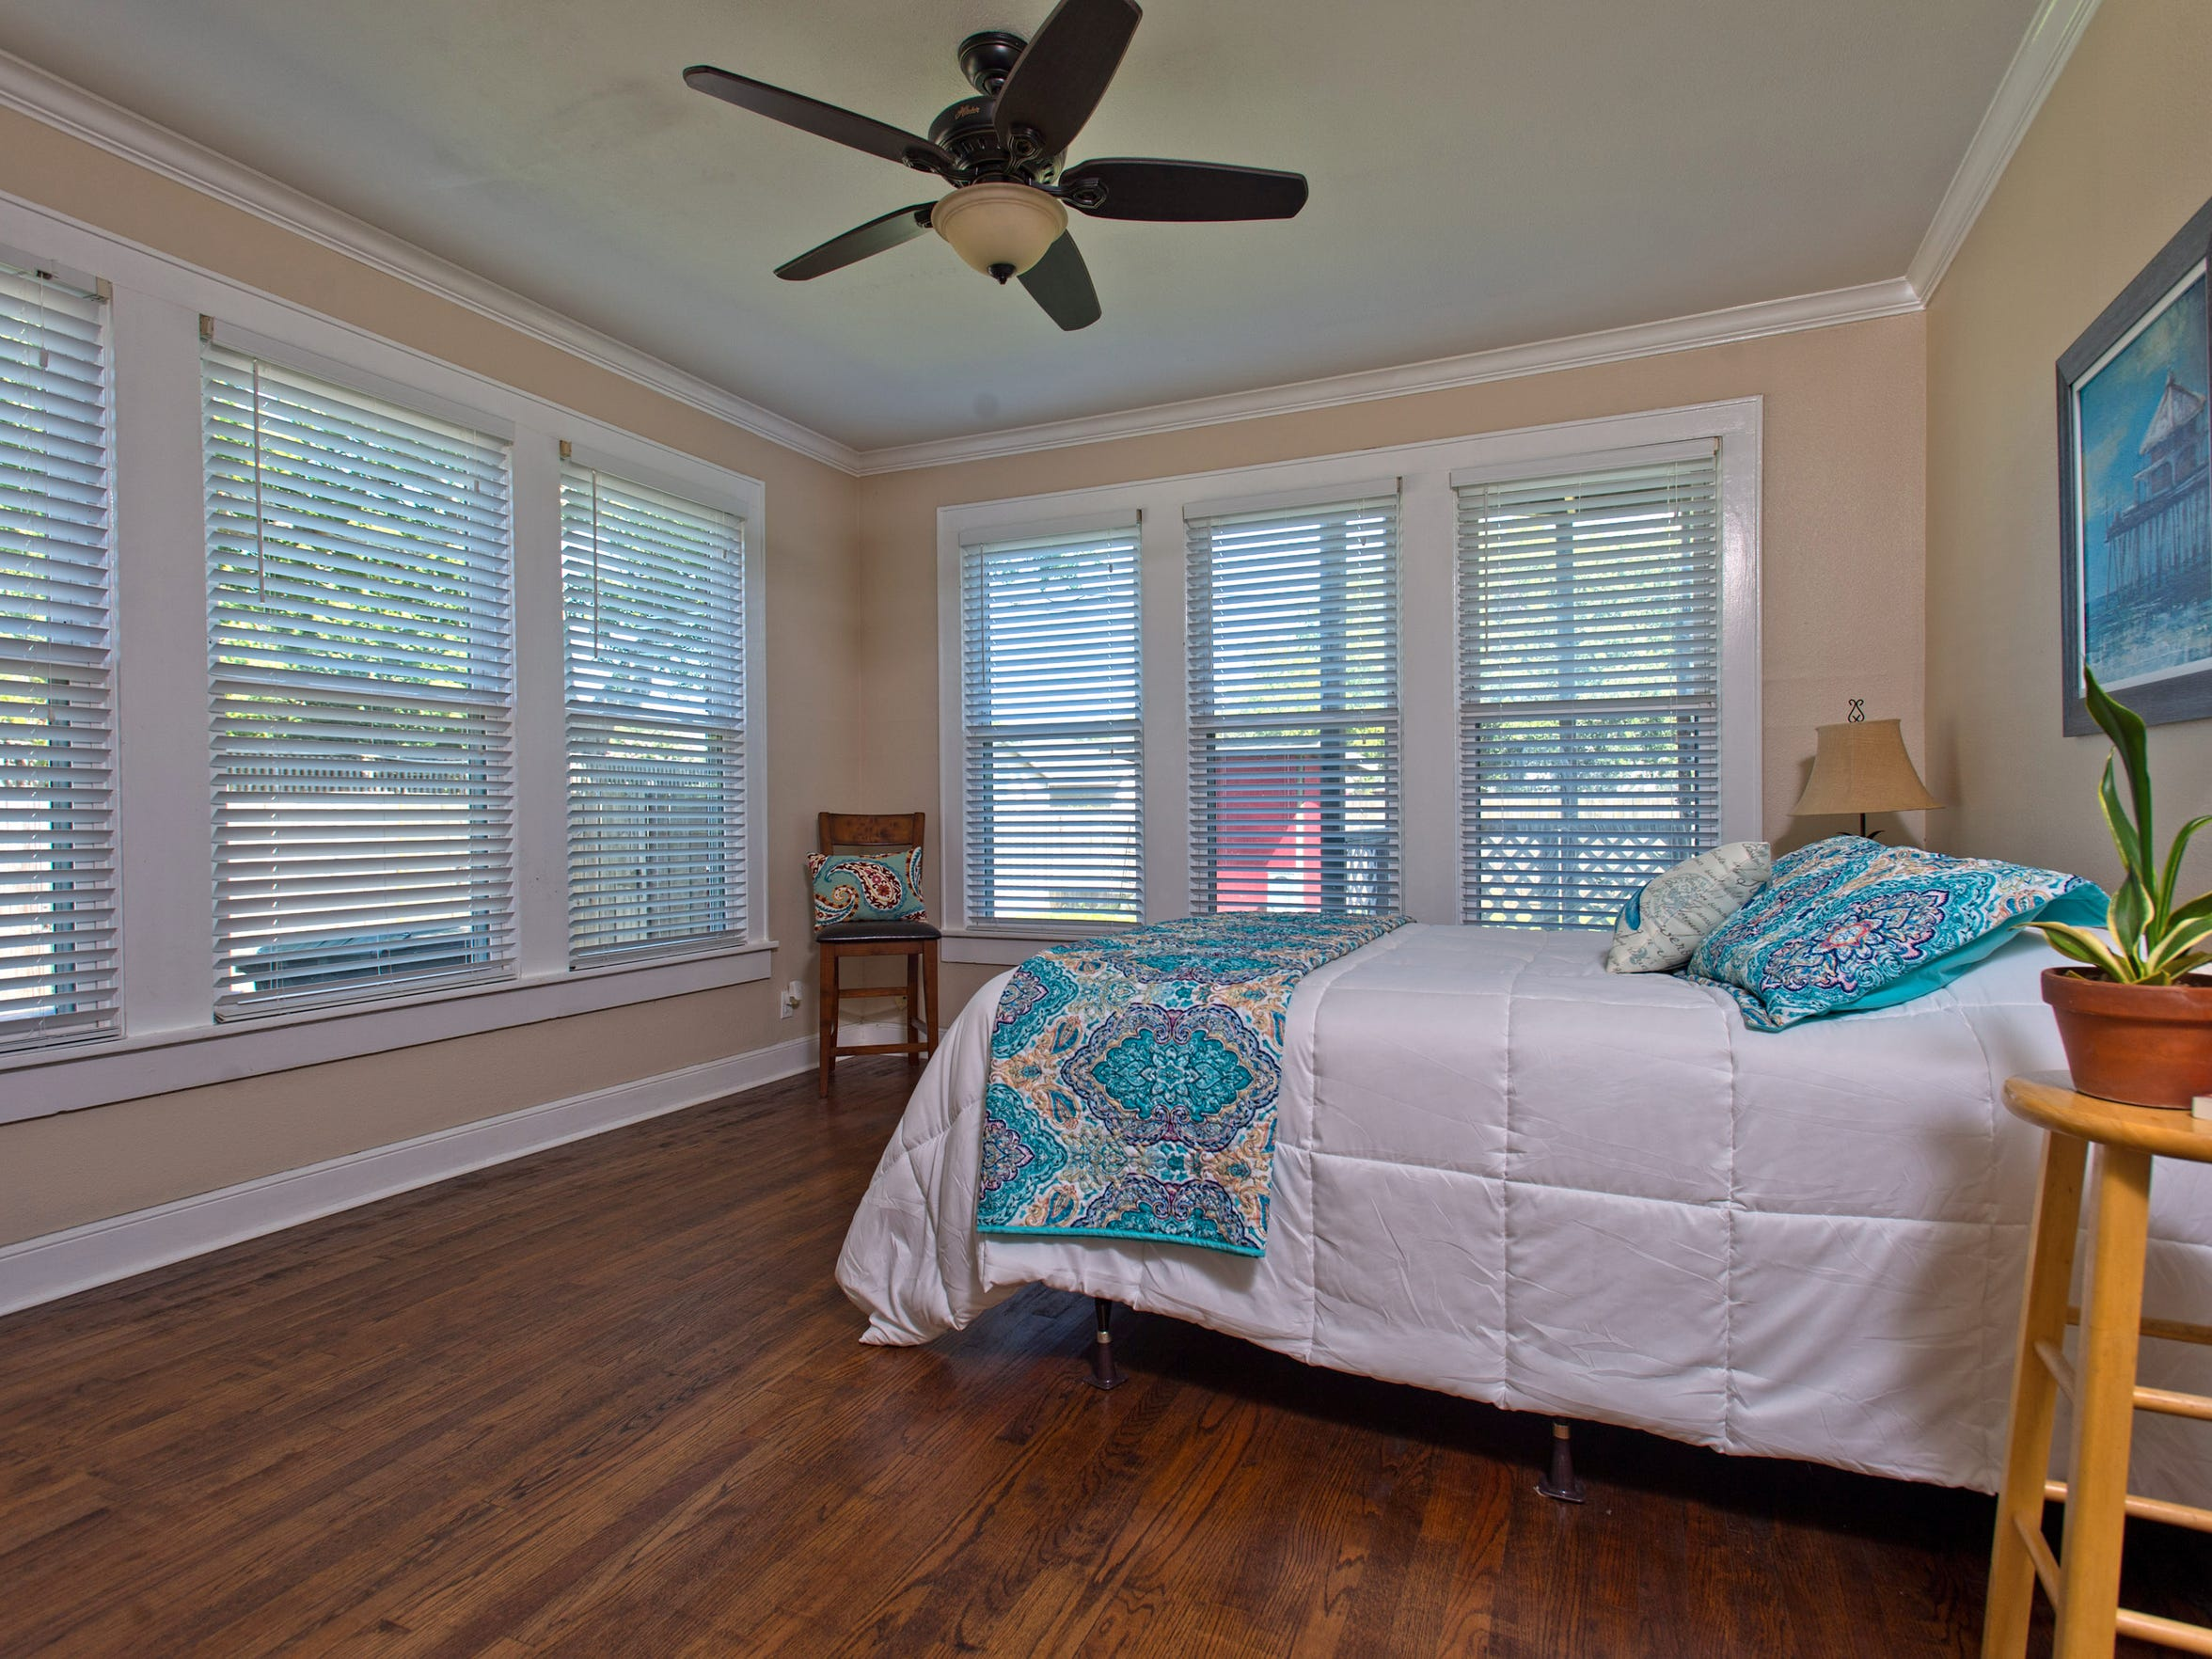 Walls of windows, crown molding and hardwood floors